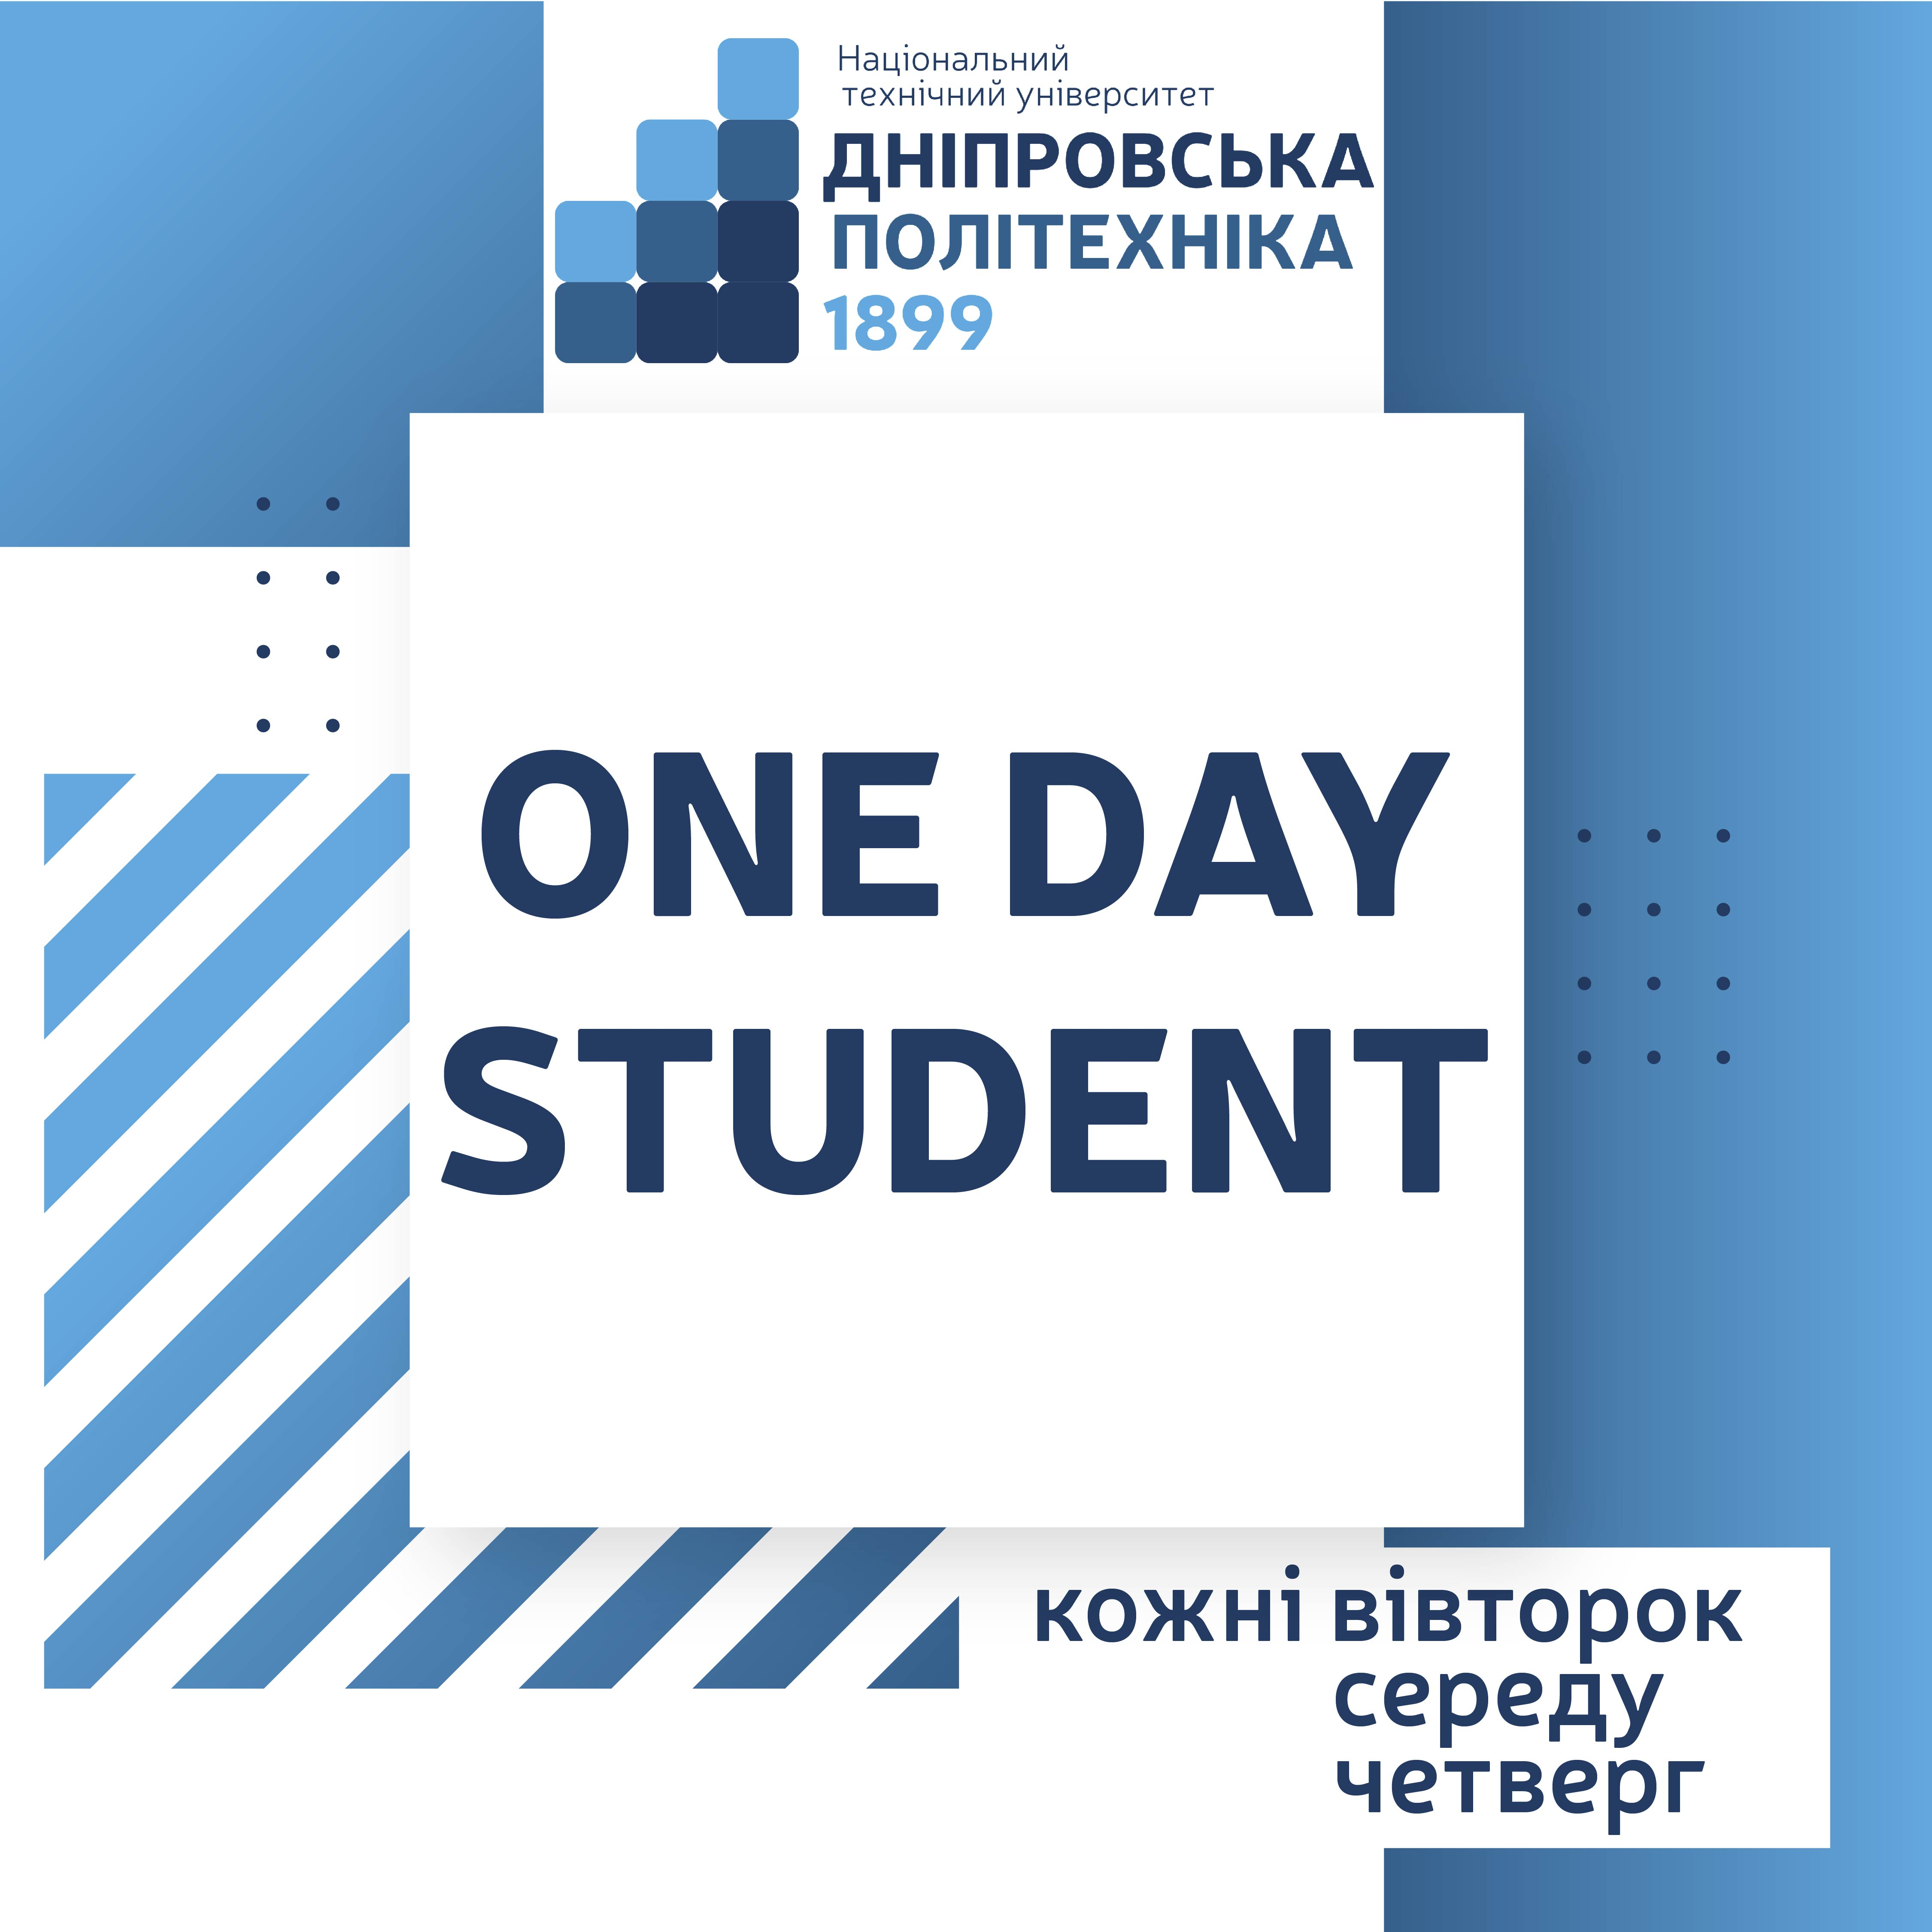 One Day Student